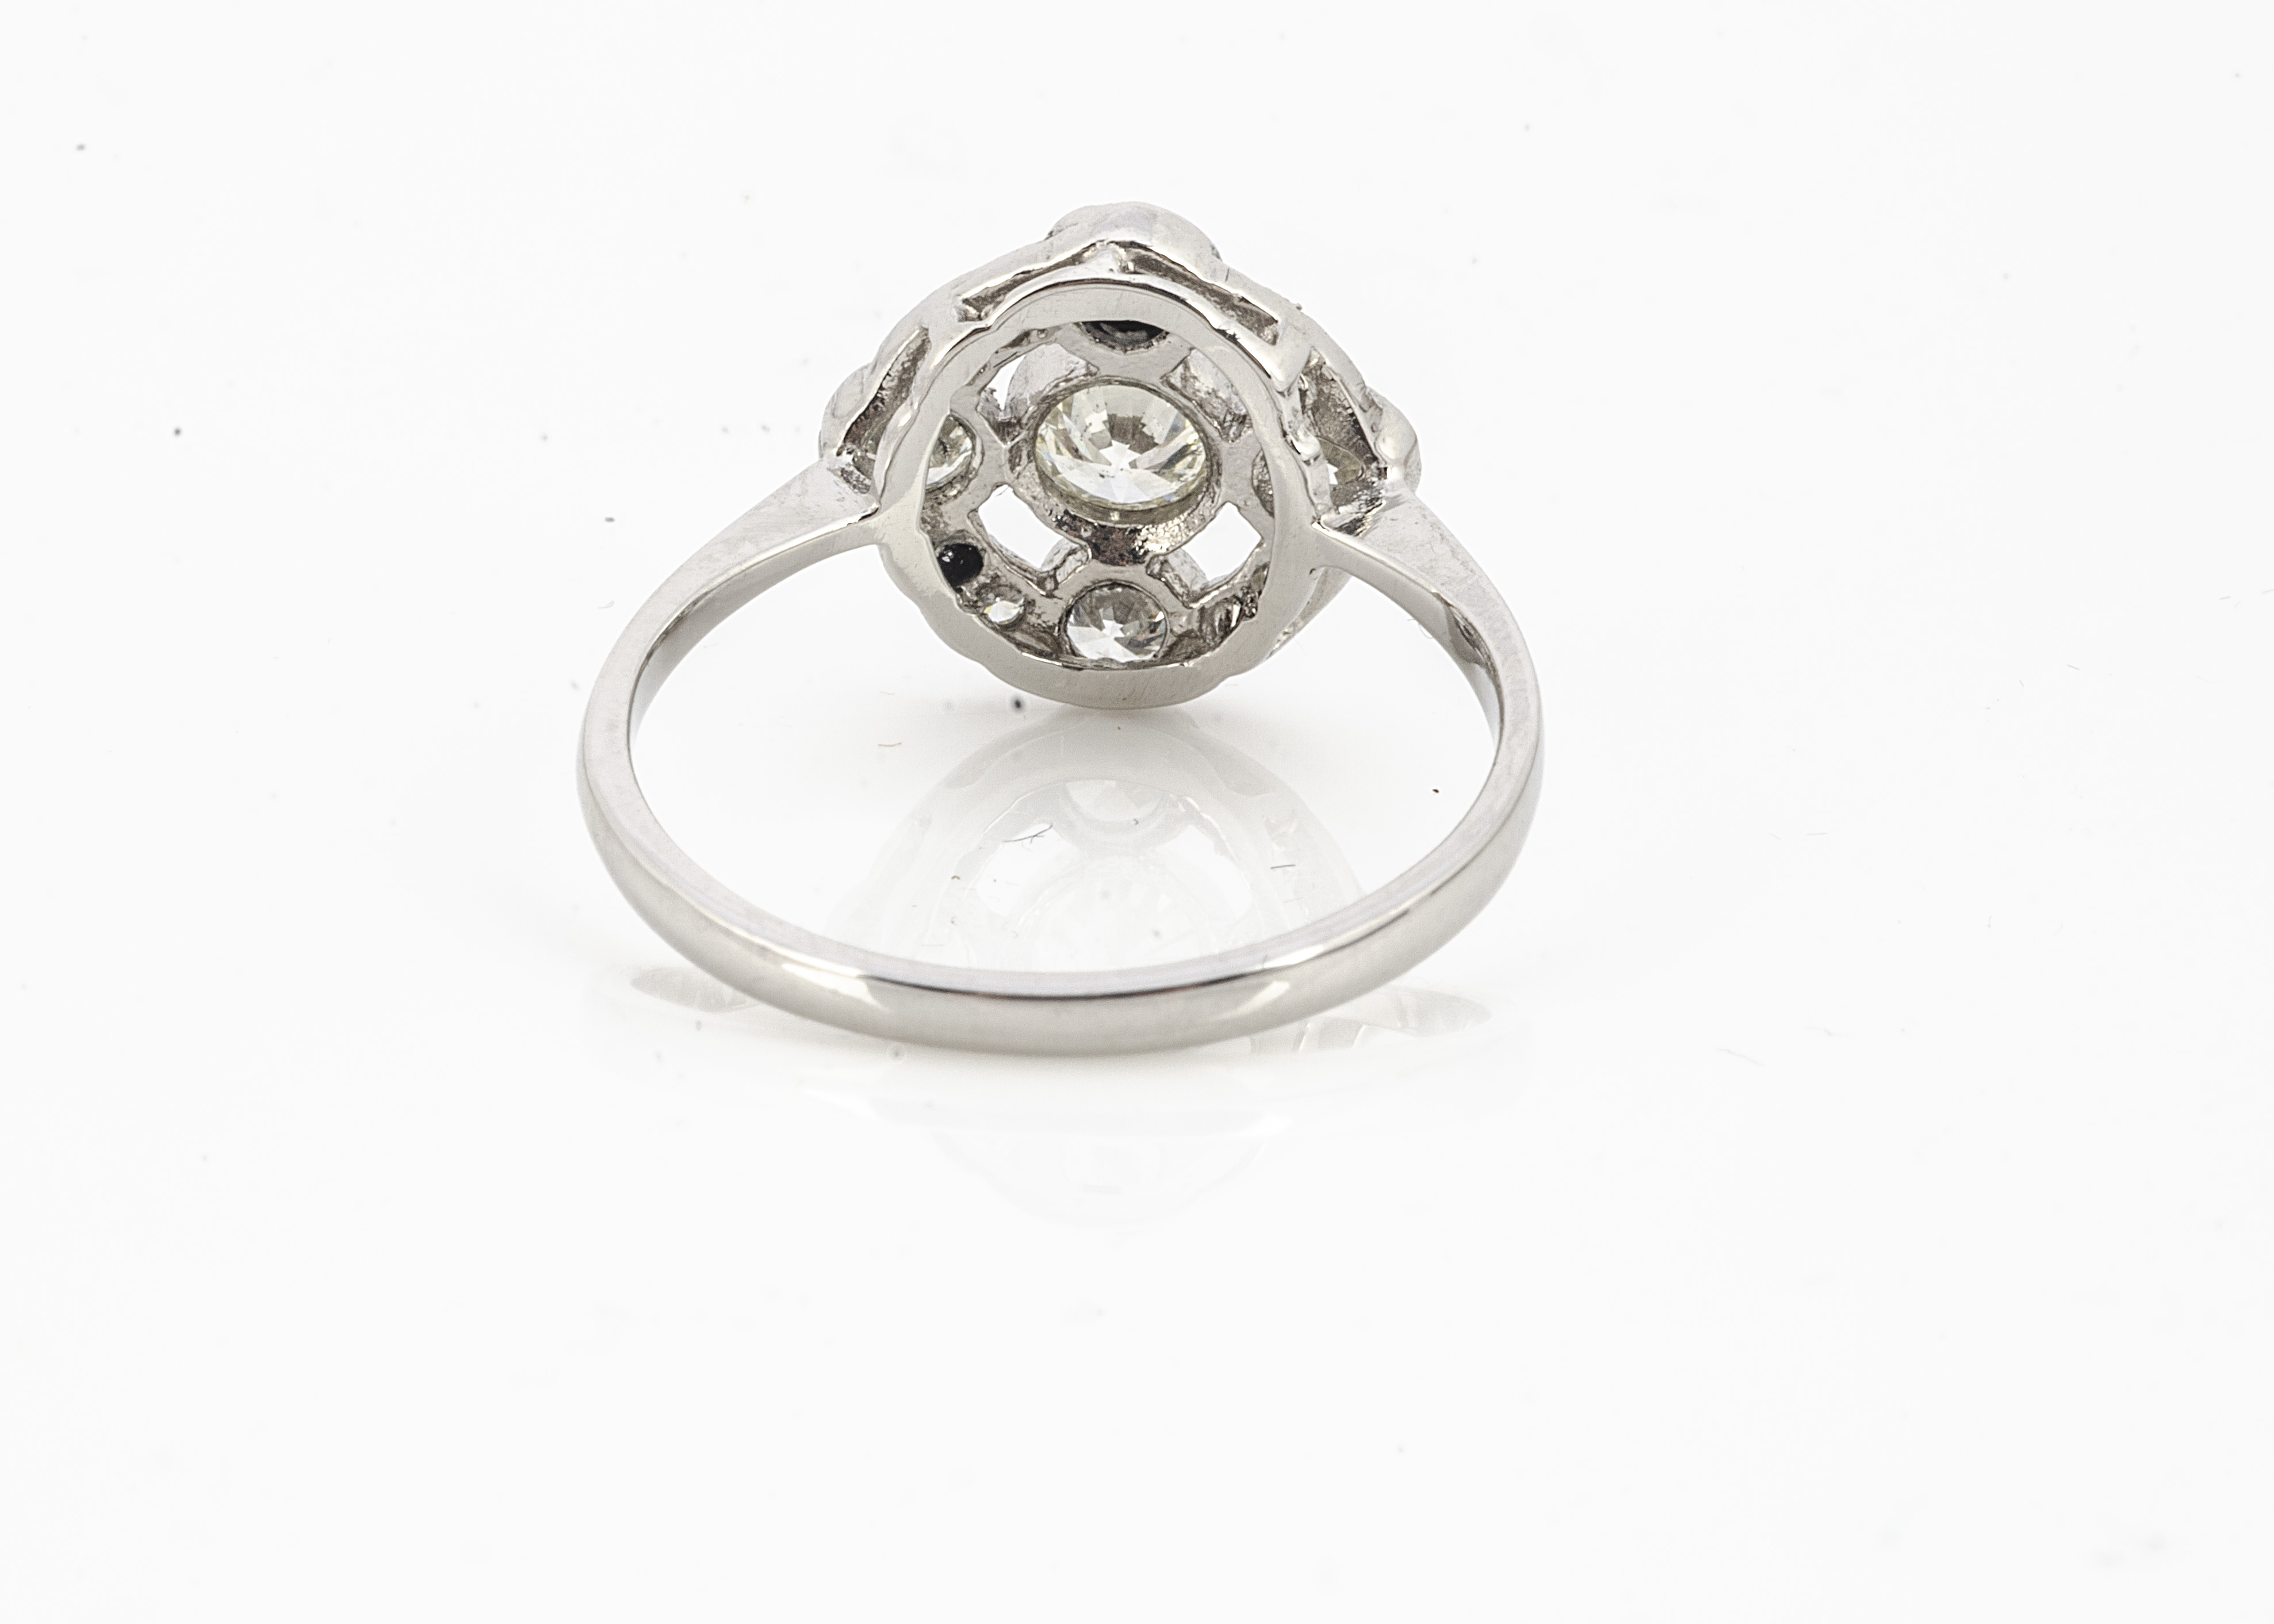 An Edwardian style diamond target ring, all in white metal stamped PLAT, brilliant cuts in colette - Image 2 of 2